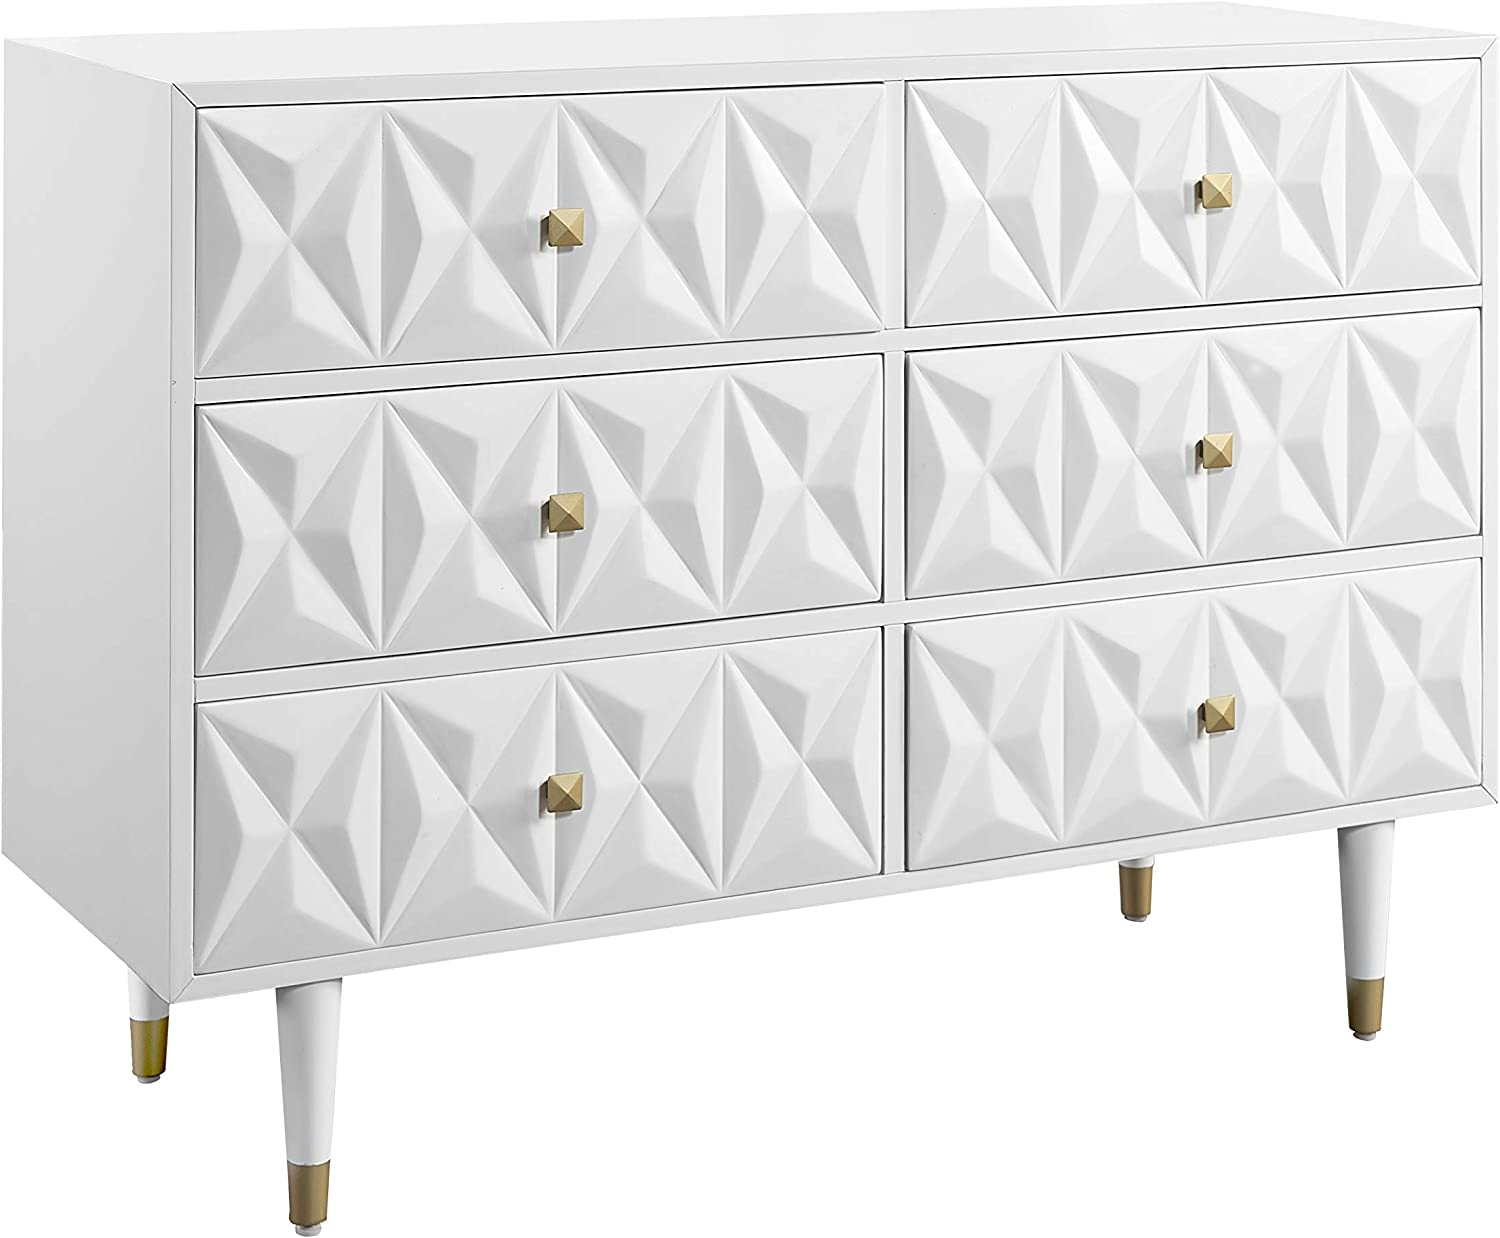 Linon Home Décor Sheerah Six Drawer Geo Texture White Dresser, Gold